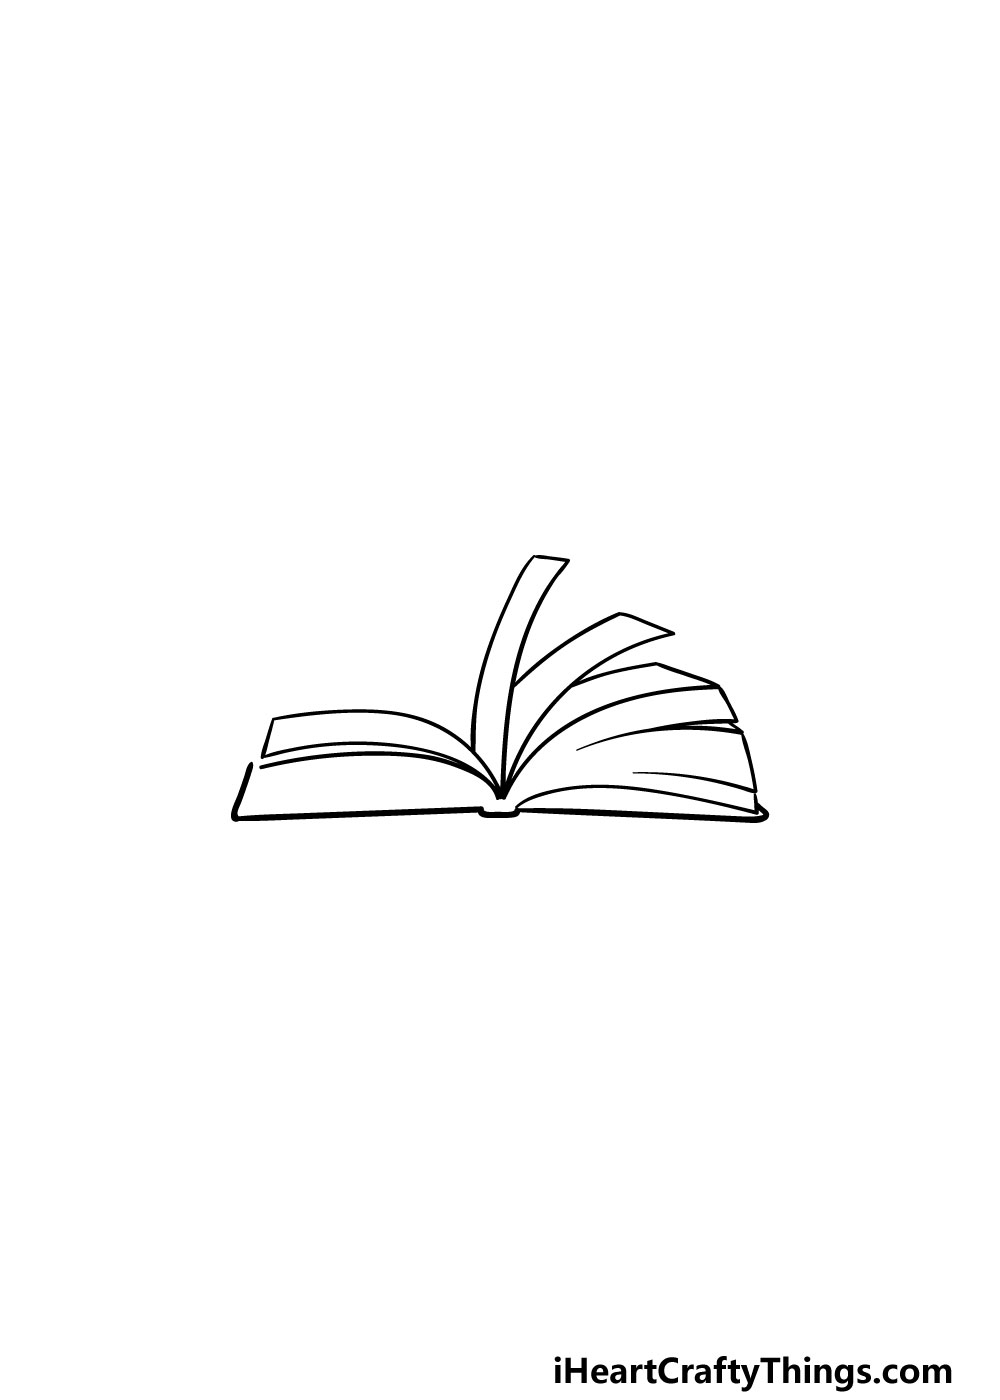 drawing an open book step 3